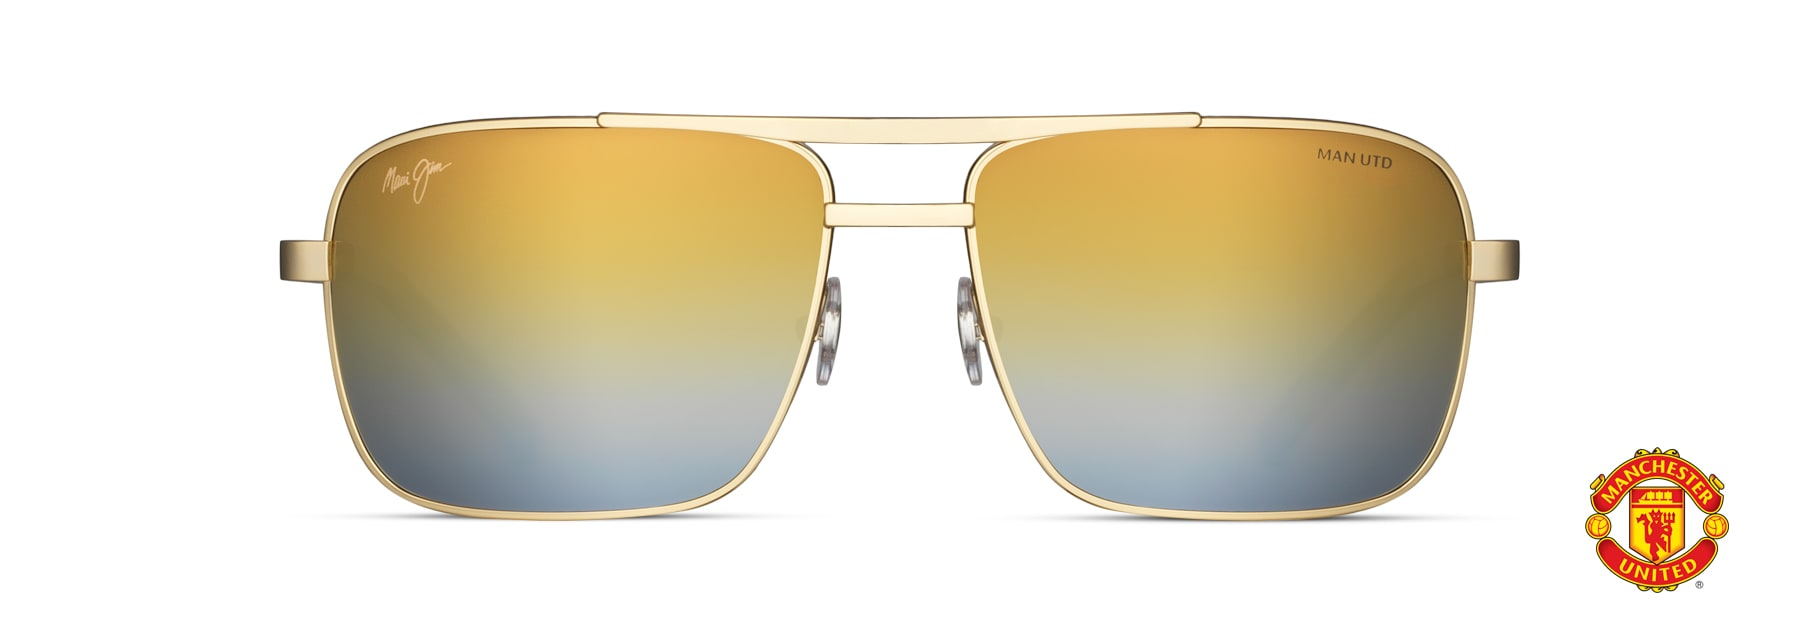 Cook Pines 774 Maui Jim Sunglasses with Patented PolarizedPlus2 Lens Technology Aviator Frame